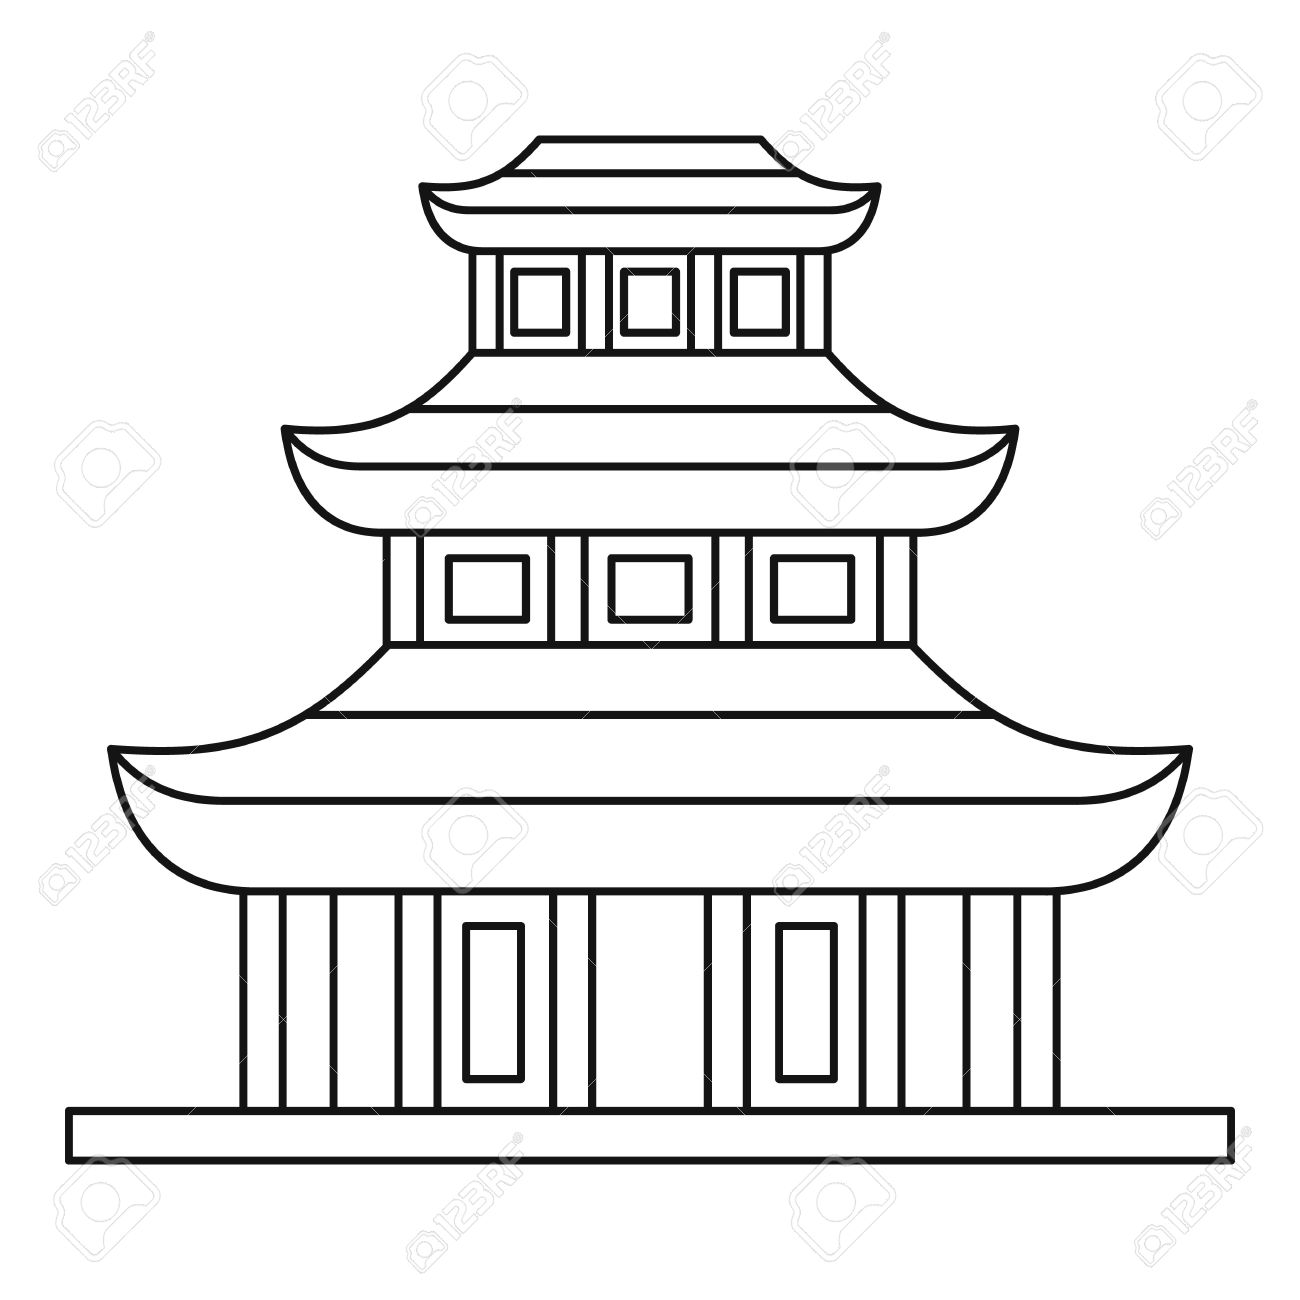 Buddhist Temple Clipart Black And White - ClipartFest | Buddhist .